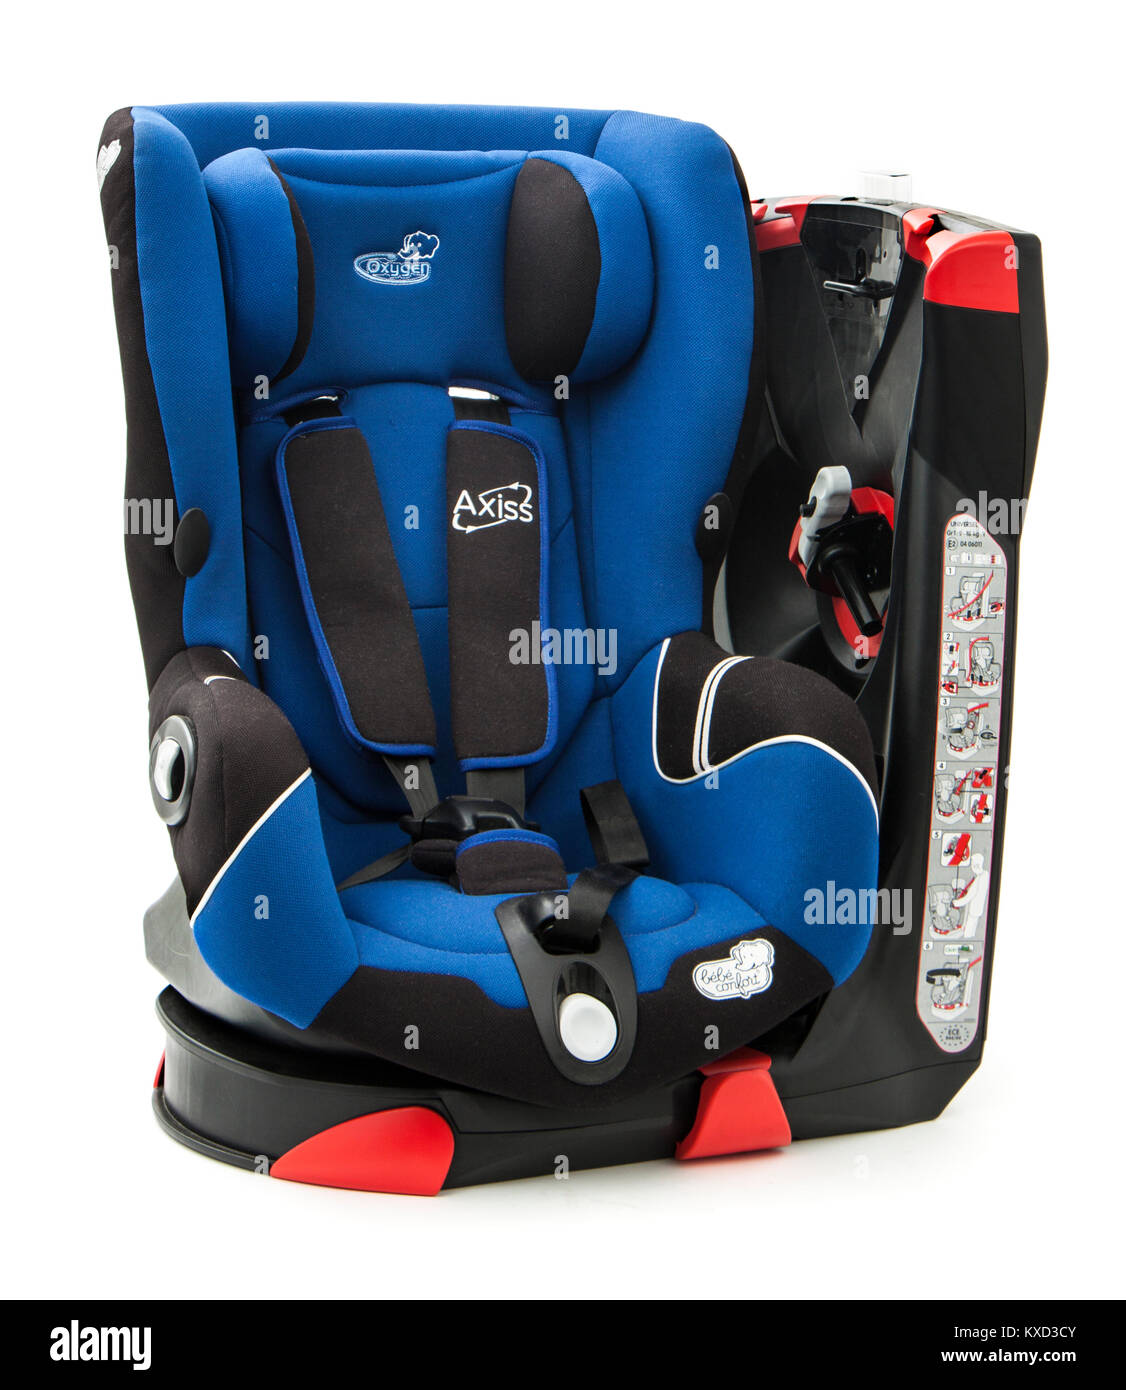 Bebe Confort 'Axiss' swiveling car seat for infants between age 9 months to 4 years (9-18kg) - Stock Image